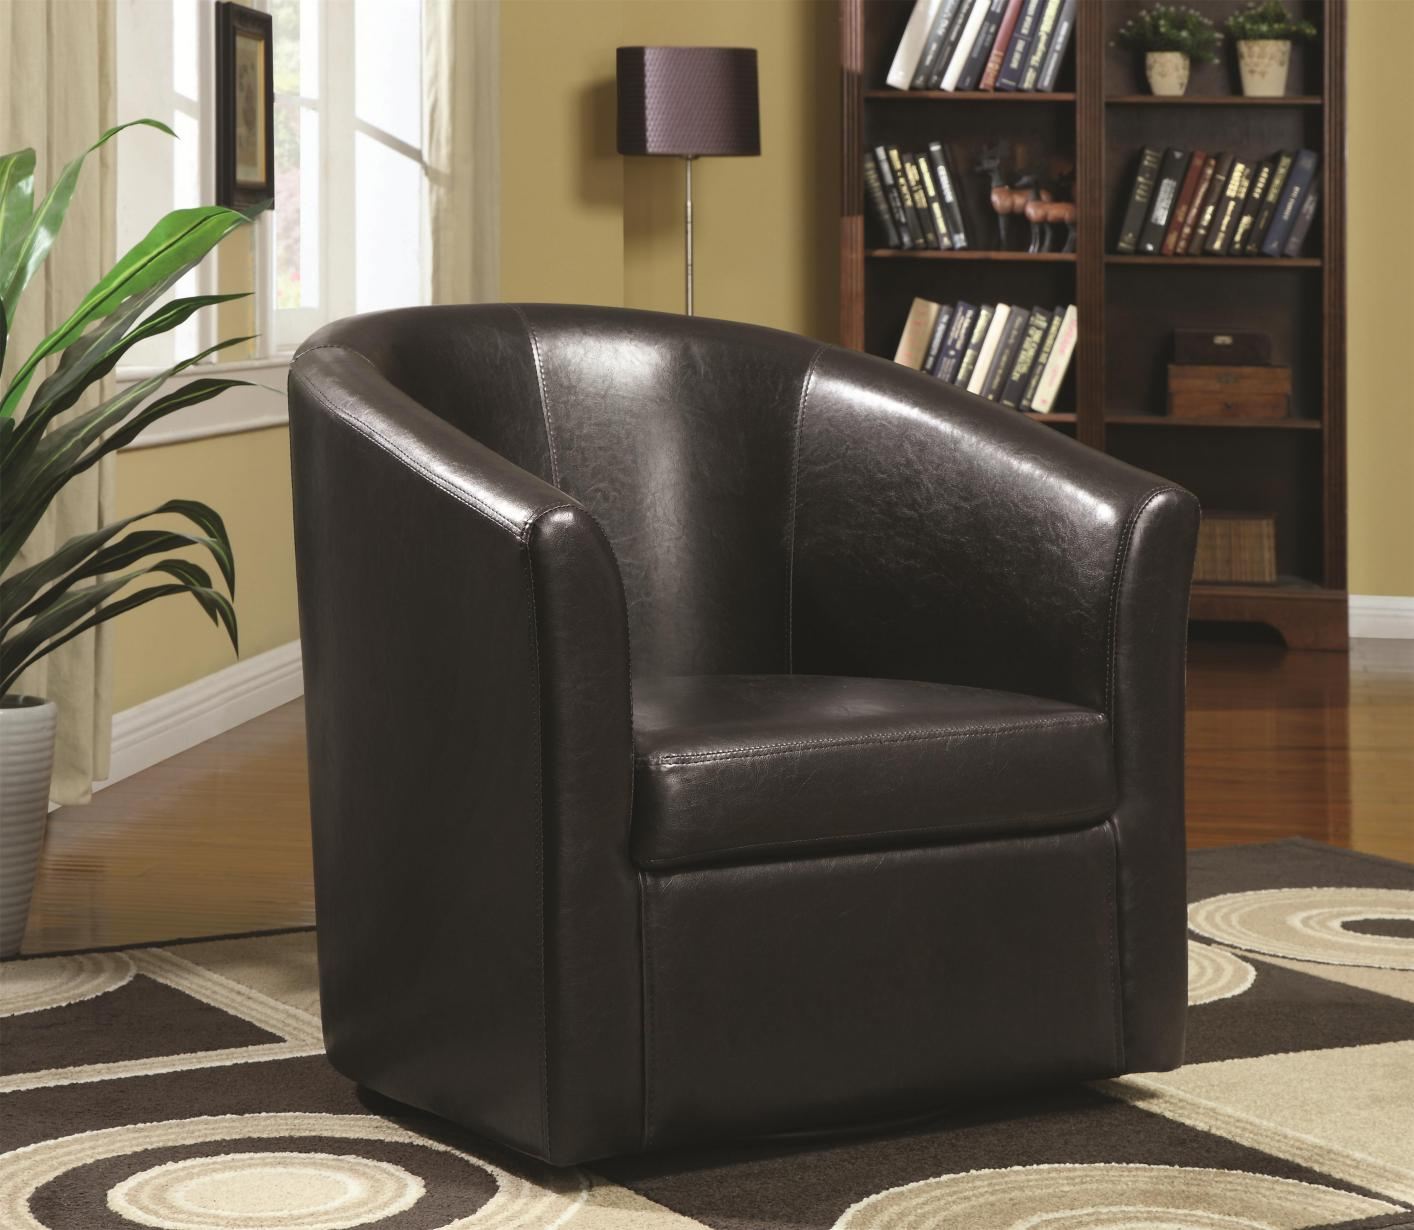 Merveilleux Brown Leather Swivel Chair